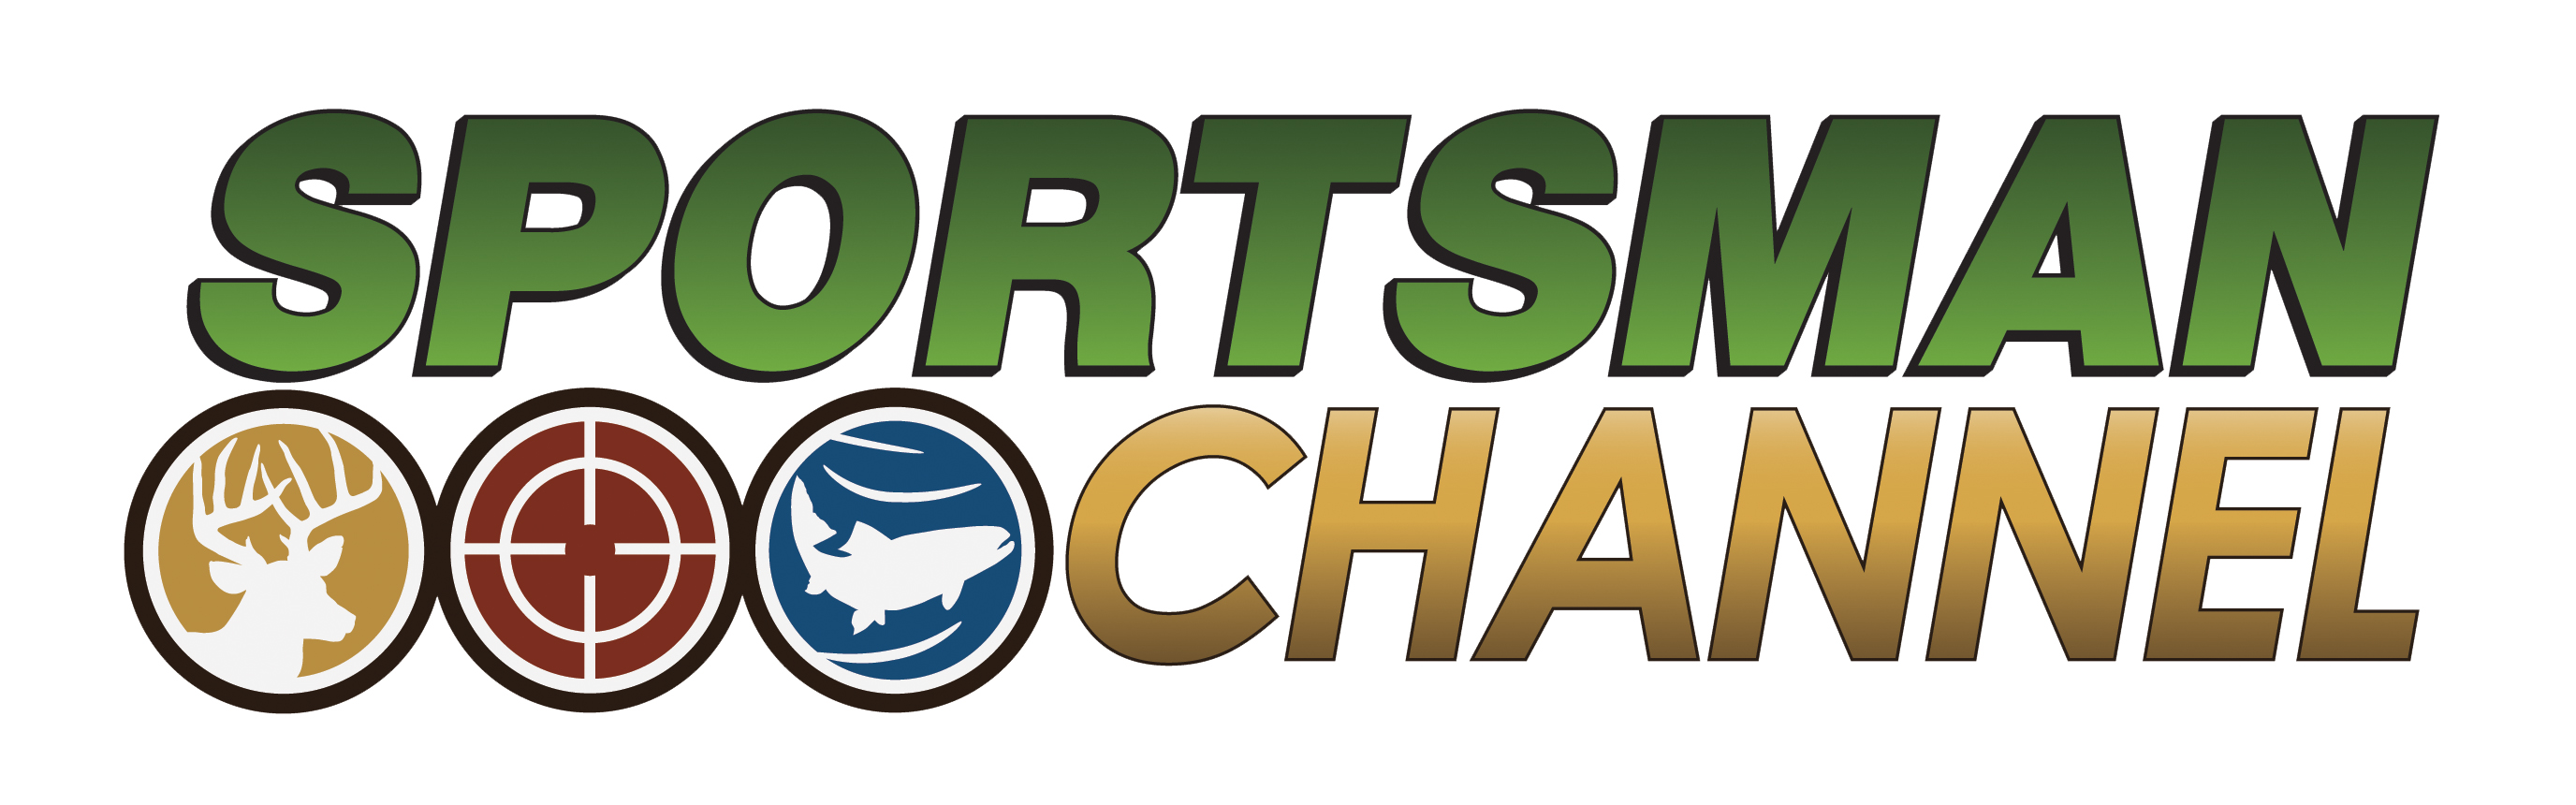 Sportsman Channel Reaches 31.1 Million Subscribers